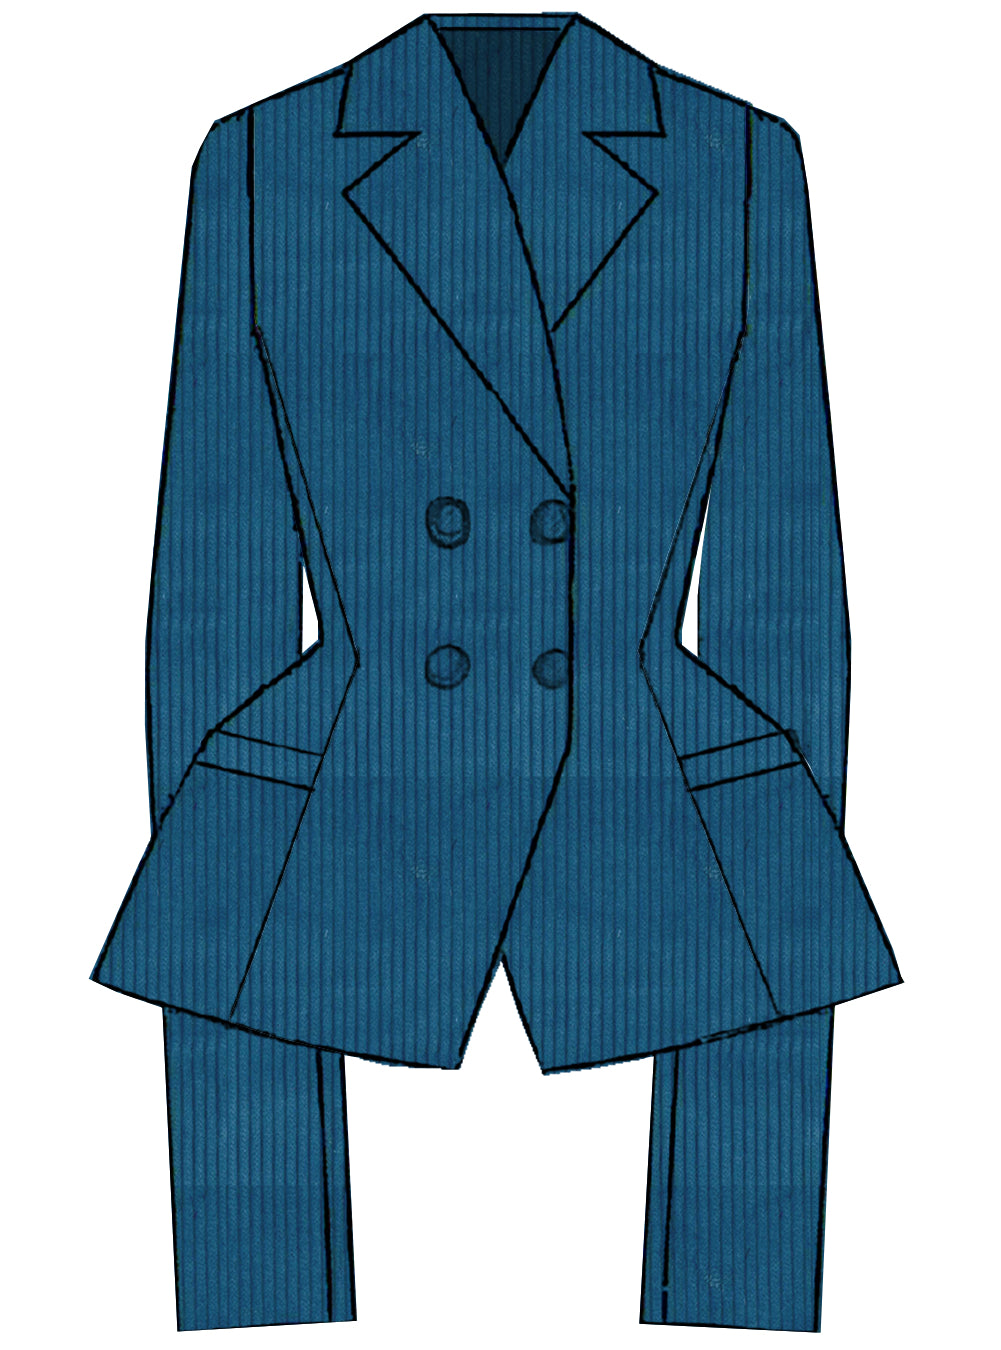 Tailored Blazer in Aquarius Big Corduroy